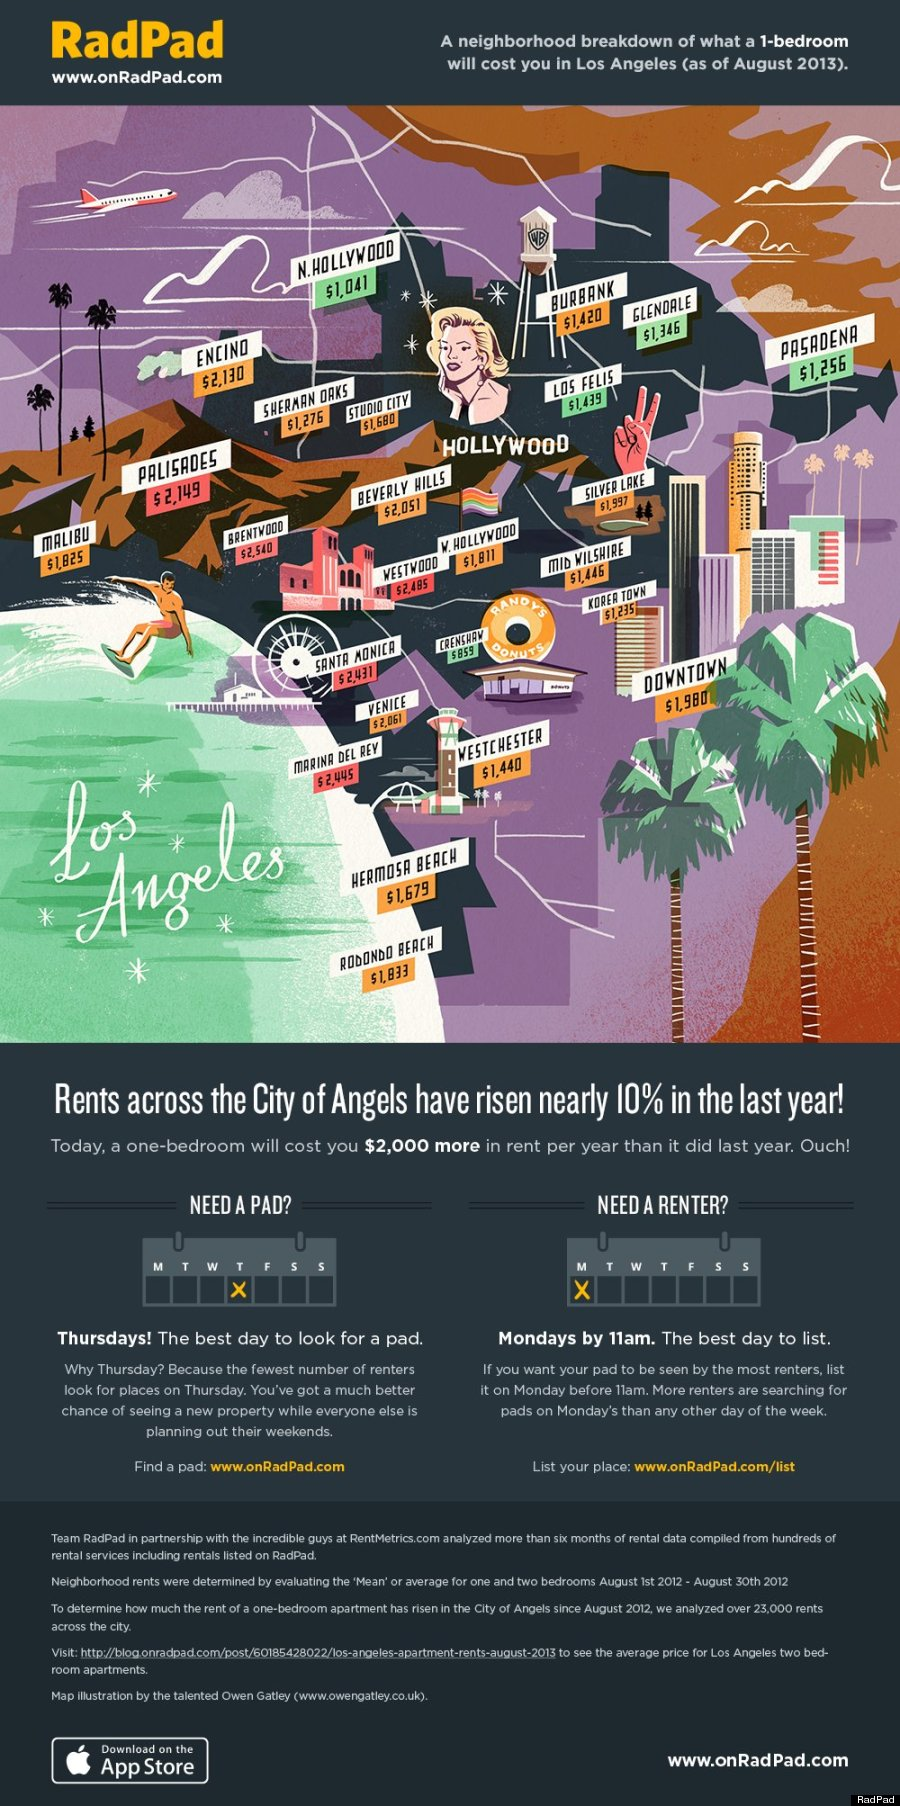 Apartment Rent Prices In Los Angeles Have Risen 10 Percent According To Radpad Infographic